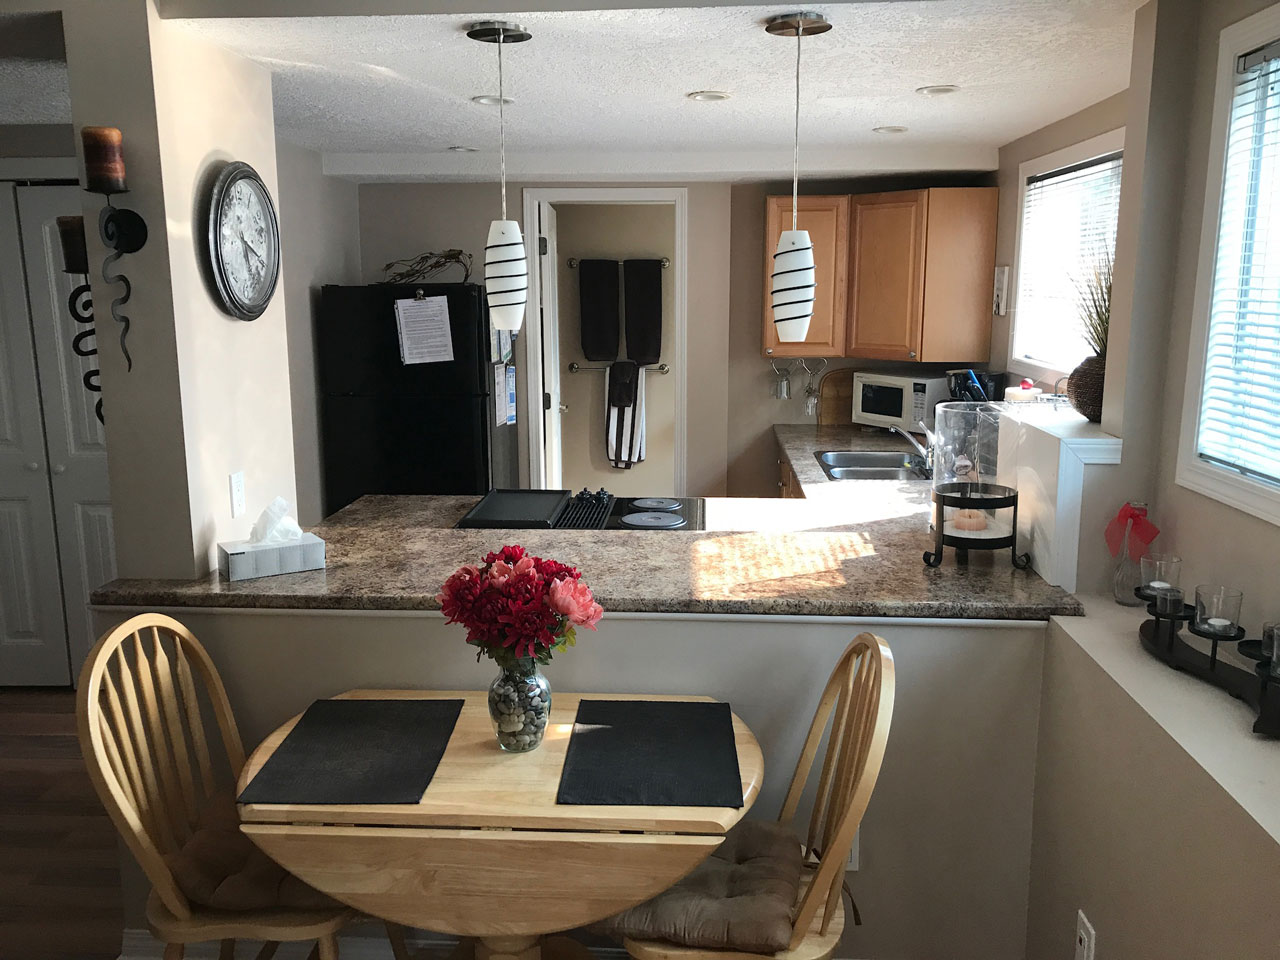 Studio suite kitchen and dining area with granite counter tops and beautifully decorated